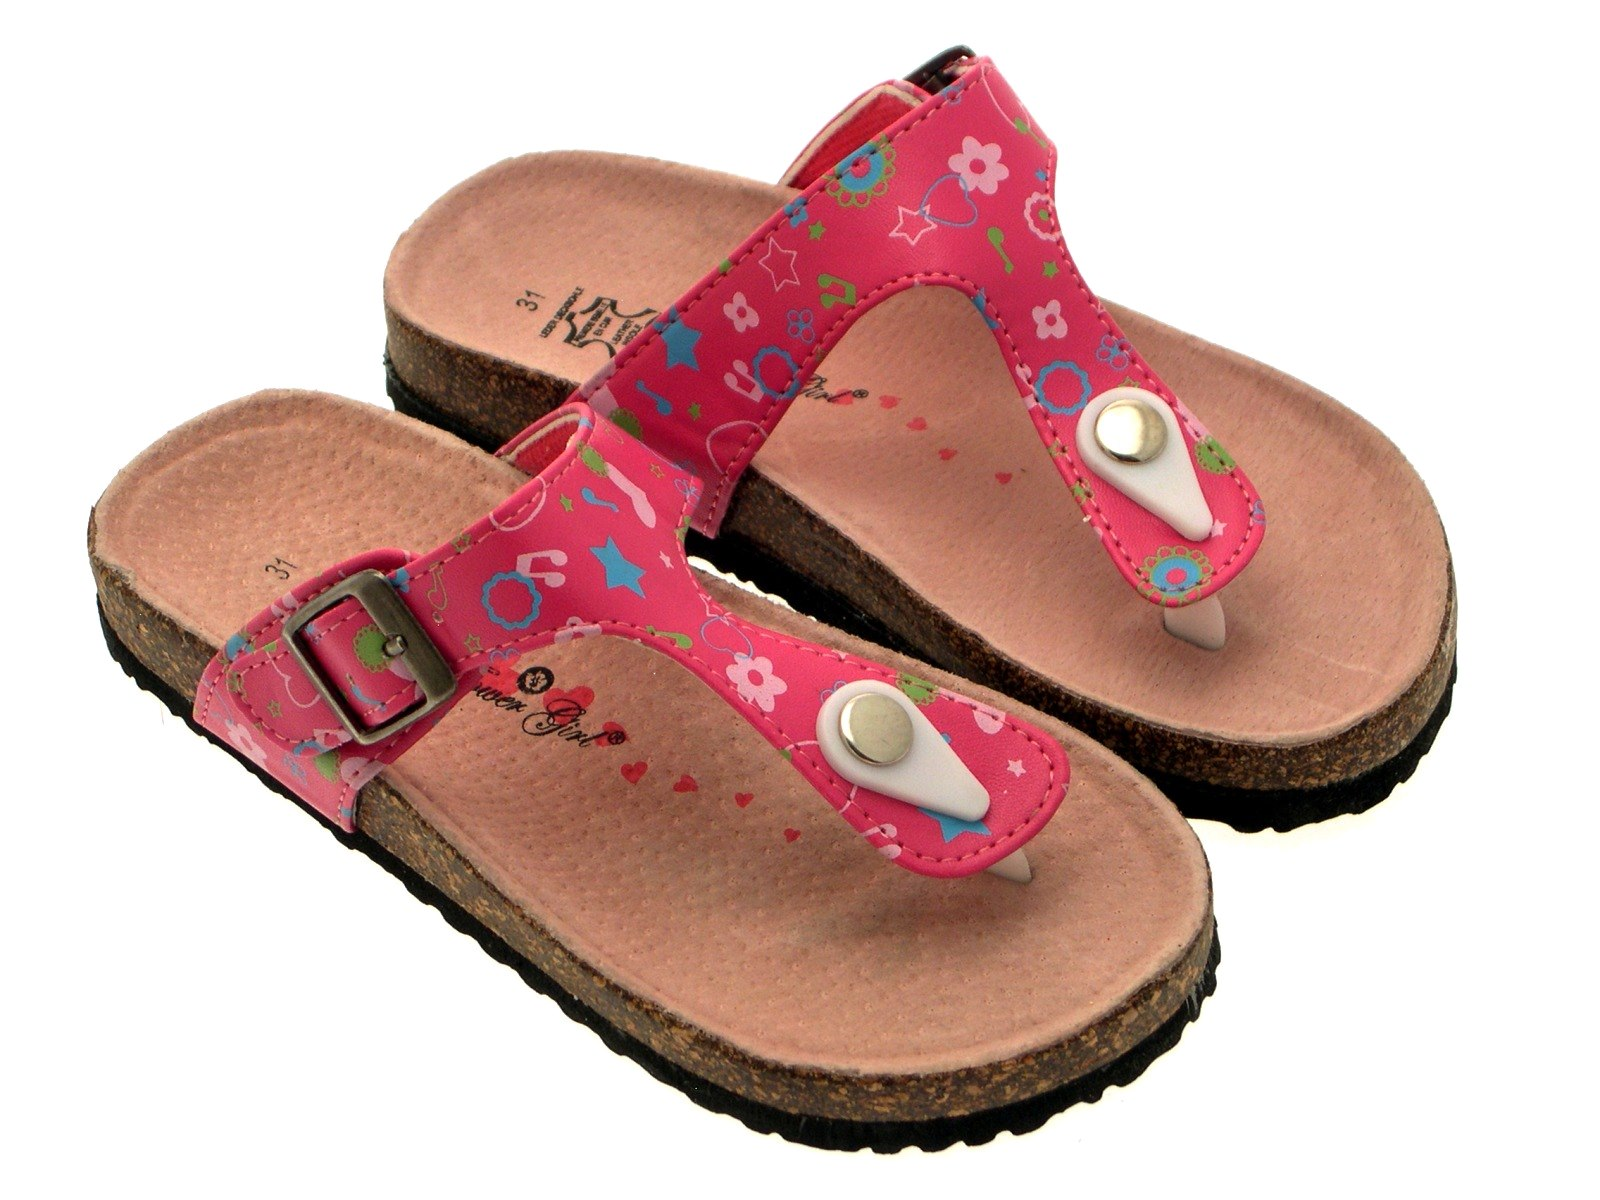 87d420ee8d4731 Girls Kids Flower Summer Sandals Toe Posts Footbed Flip Flops Mules ...